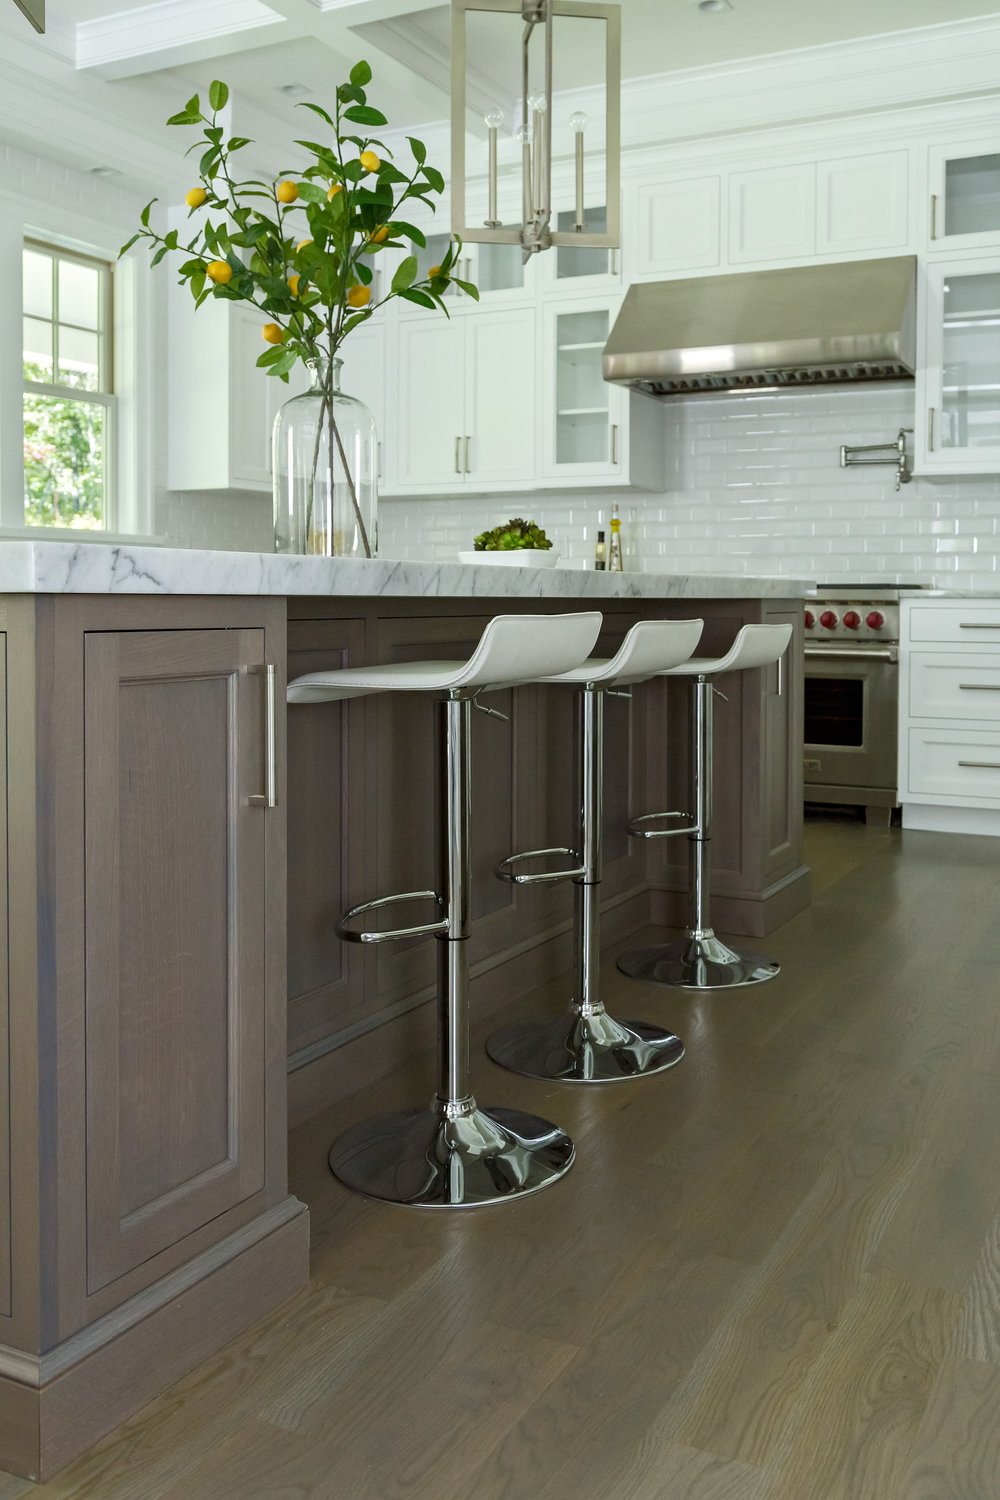 Transitional style kitchen with three counter stools